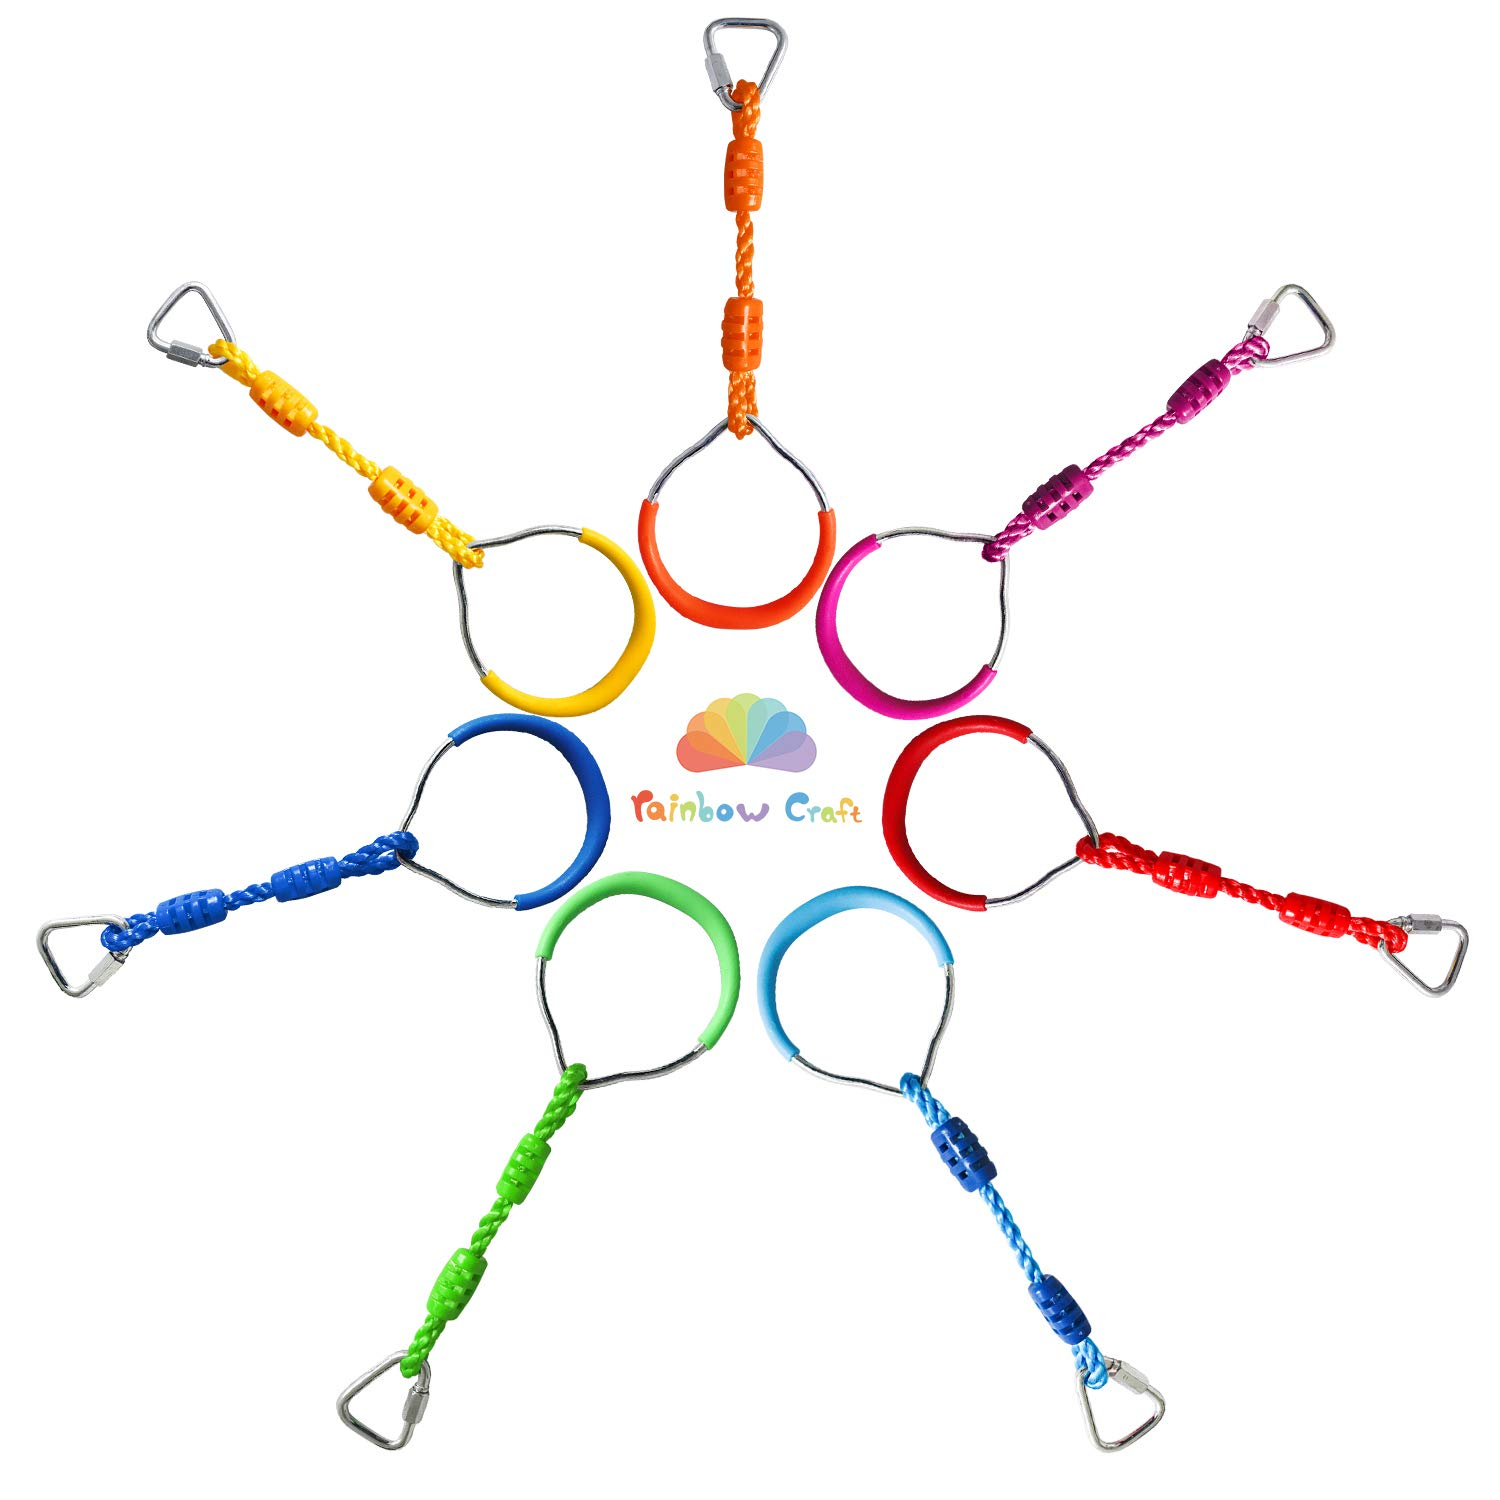 Rainbow Craft Swing Bar Rings - Colorful Backyard Outdoor Gymnastic Ring, Ninja Ring, Monkey Ring, Climbing Ring and Obstacle Ring- 7 pcs Pack by Rainbow Craft (Image #1)